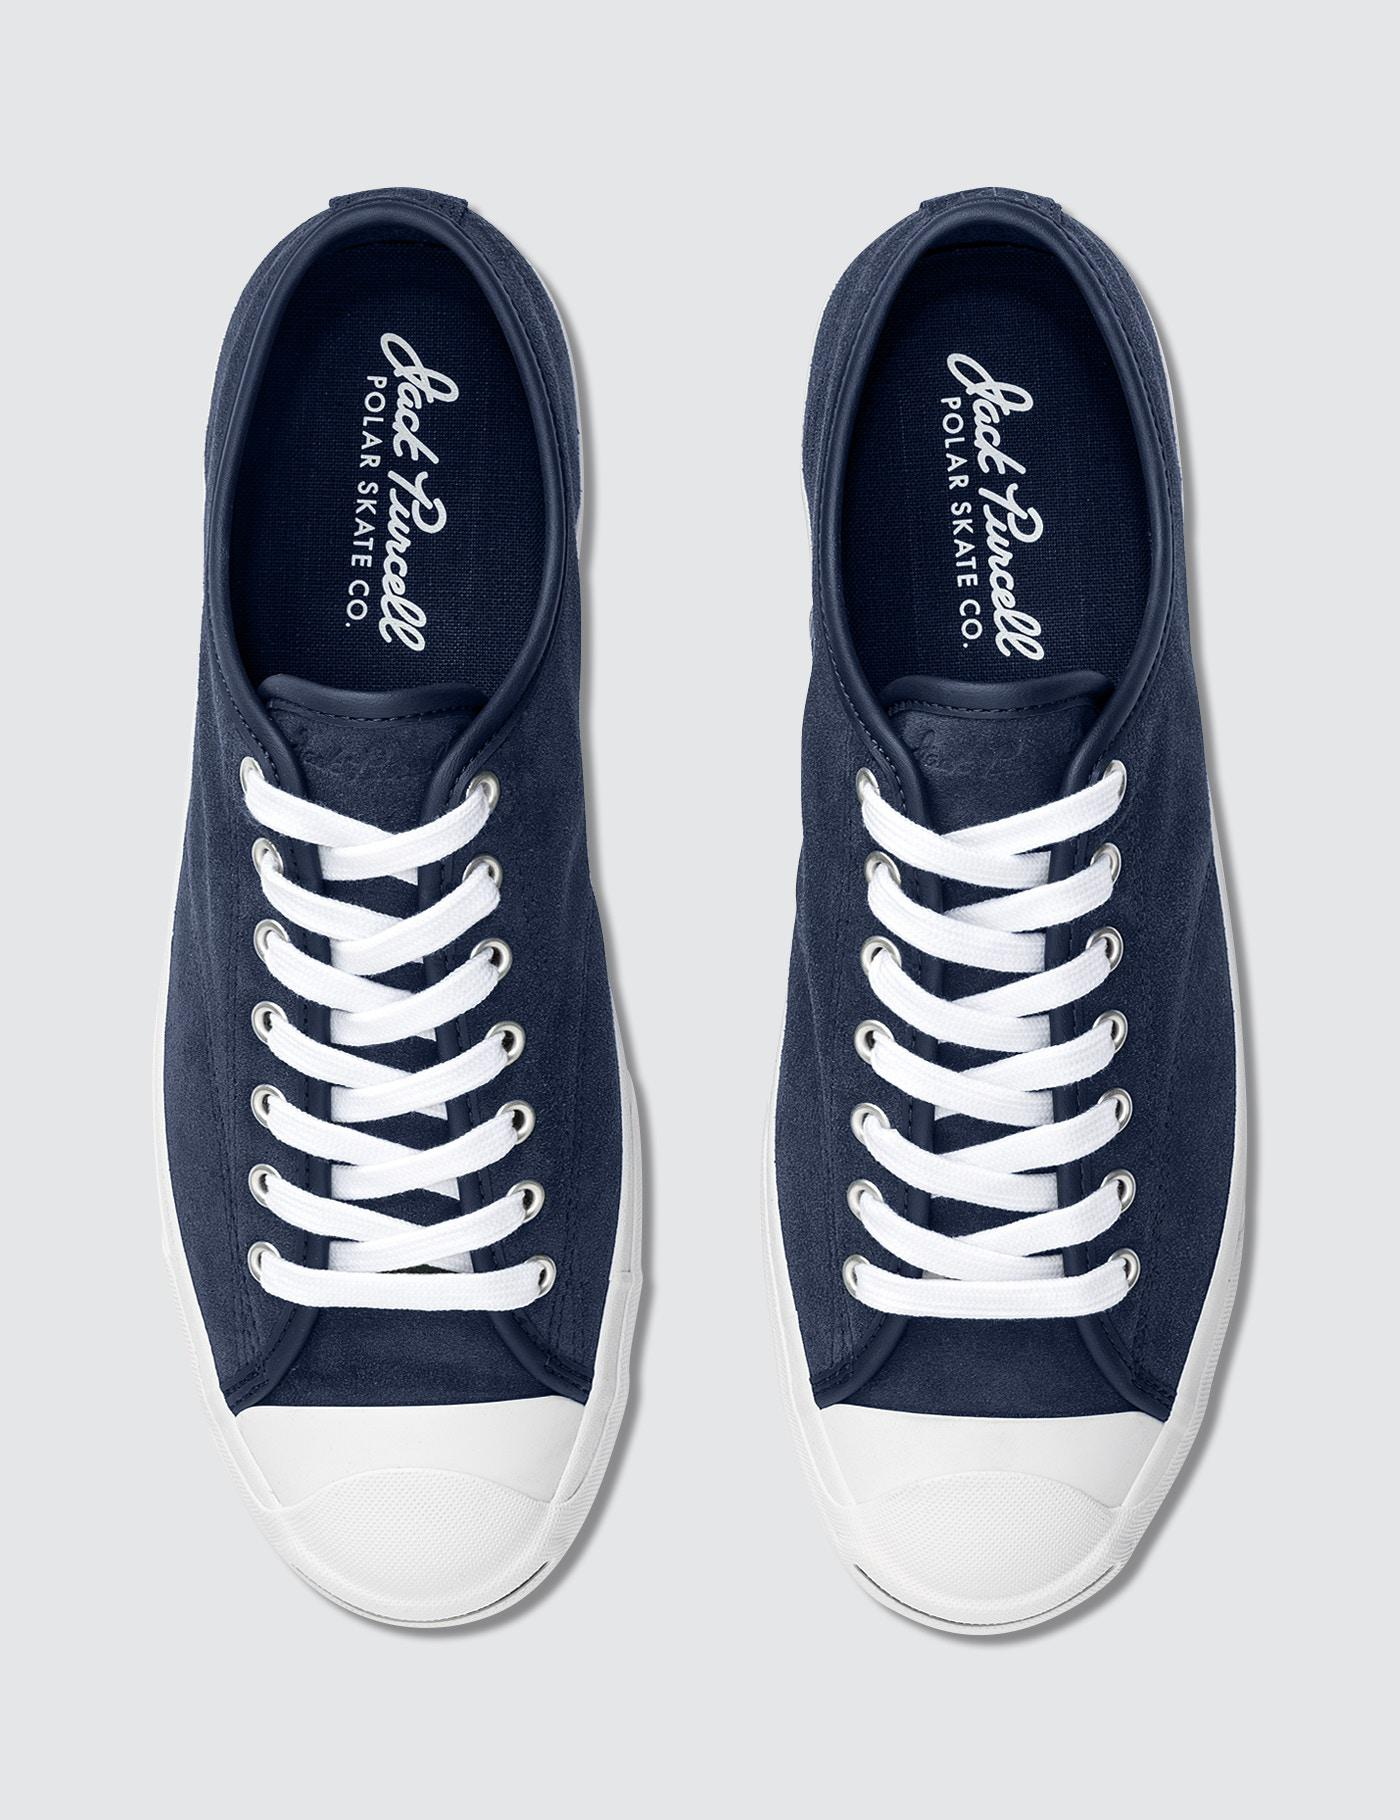 Converse Blue Polar Skate Co. X Jack Purcell Pro for men